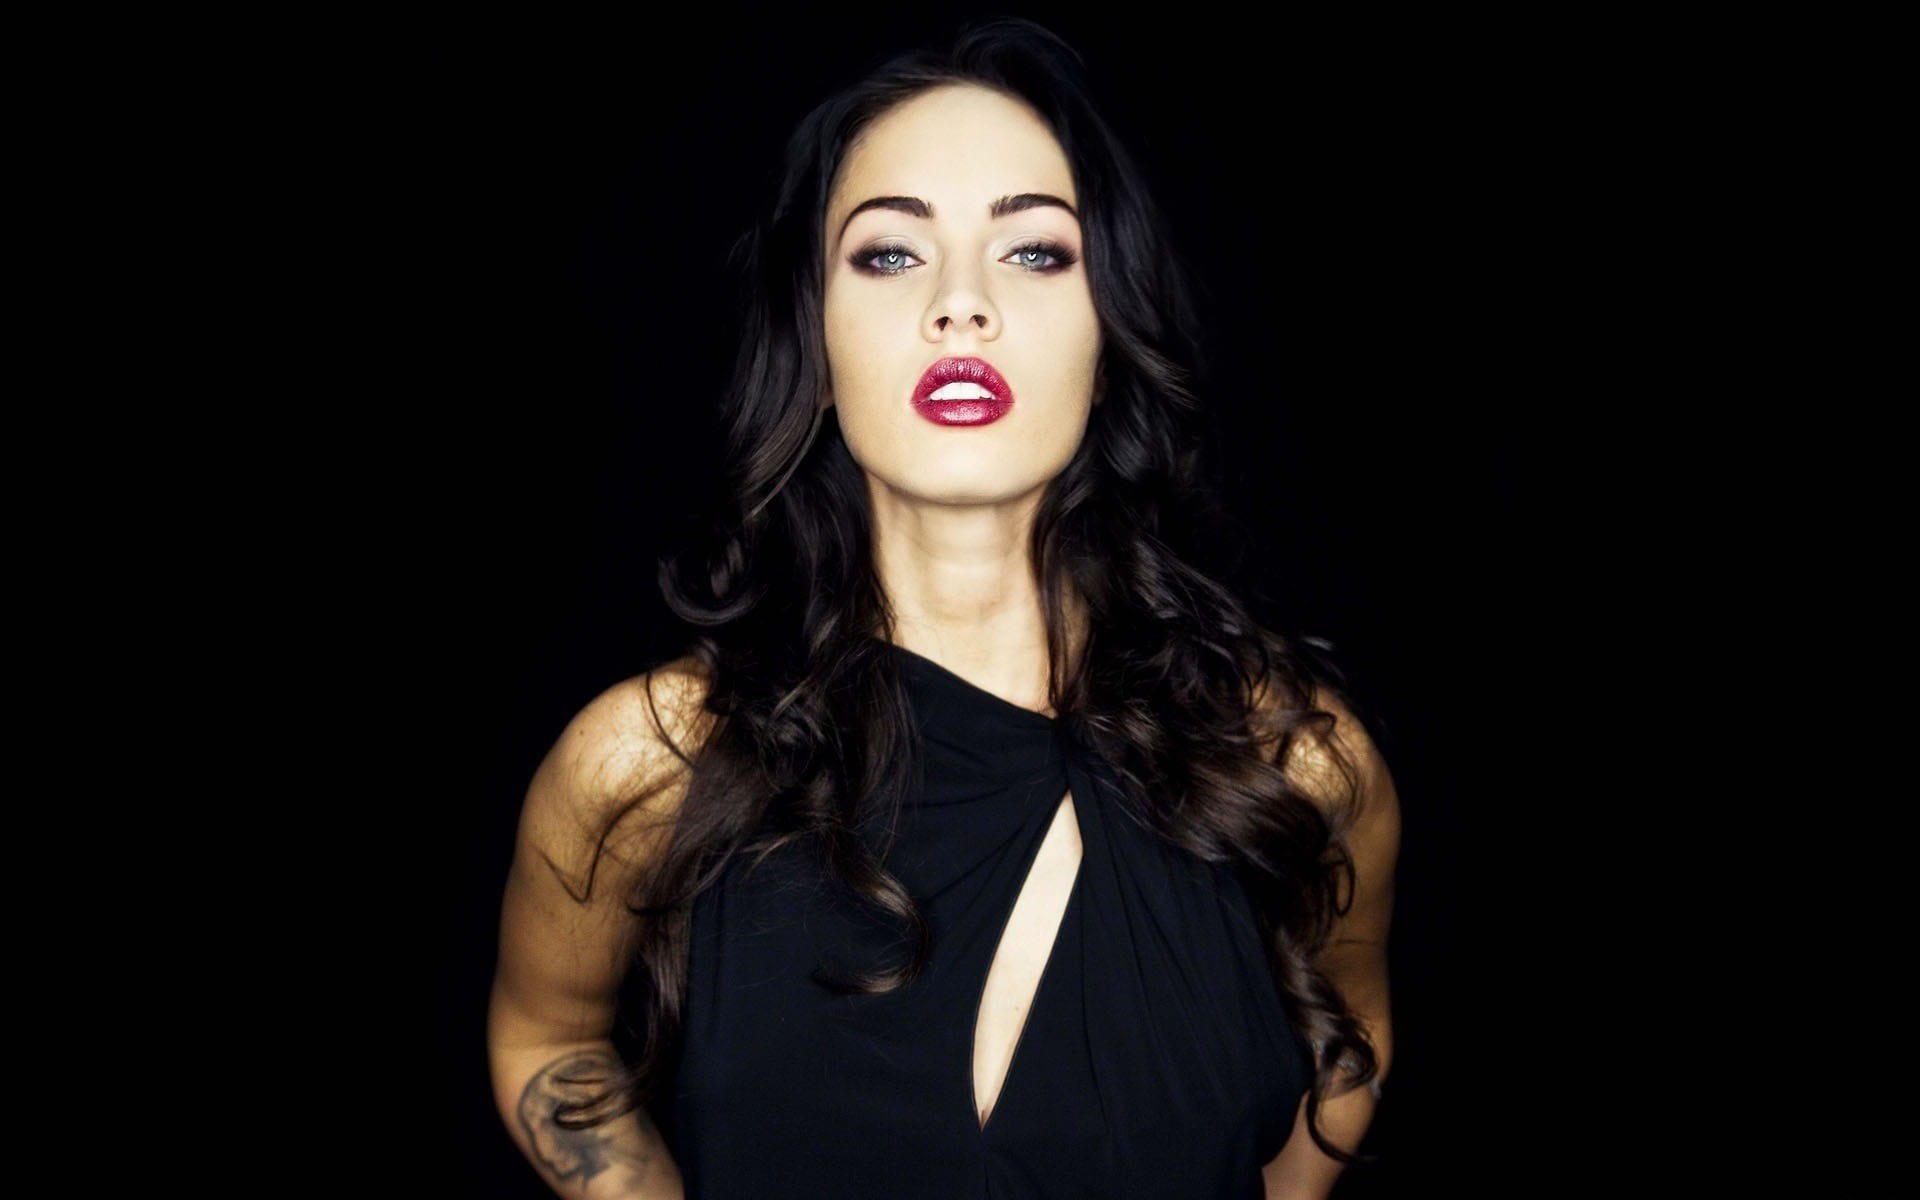 Megan Fox full hd wallpapers